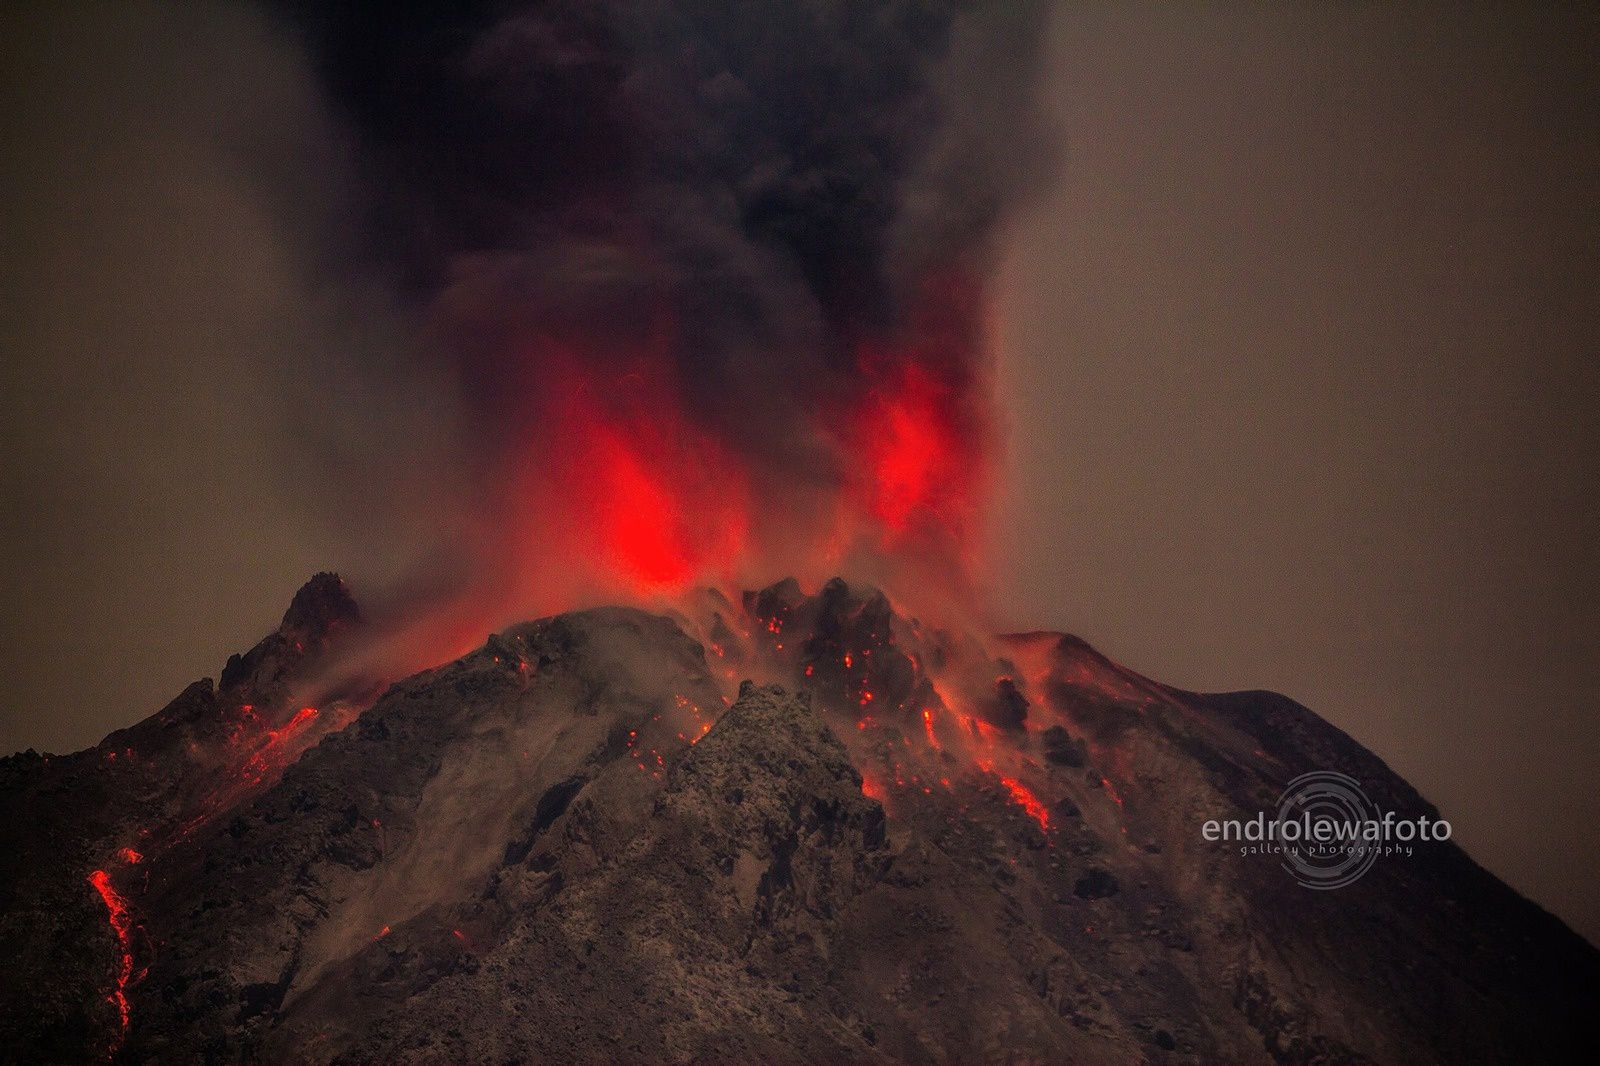 Sinabung 20.04.2016 / 22h36  - photo endrolewa